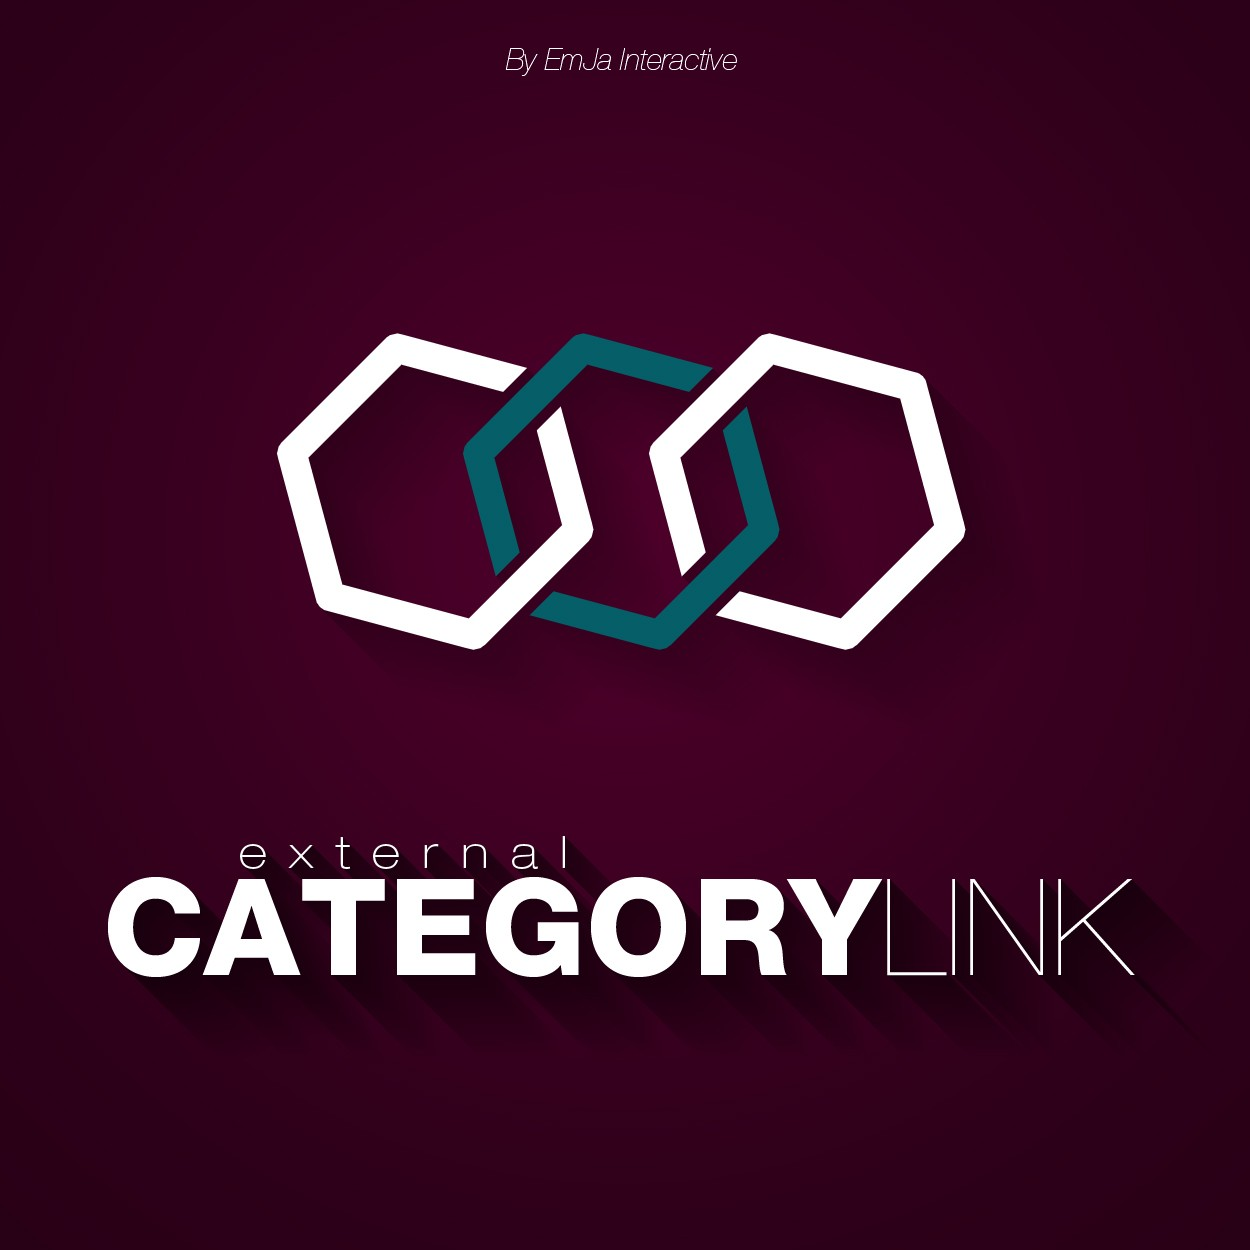 External Category Link - Box Art